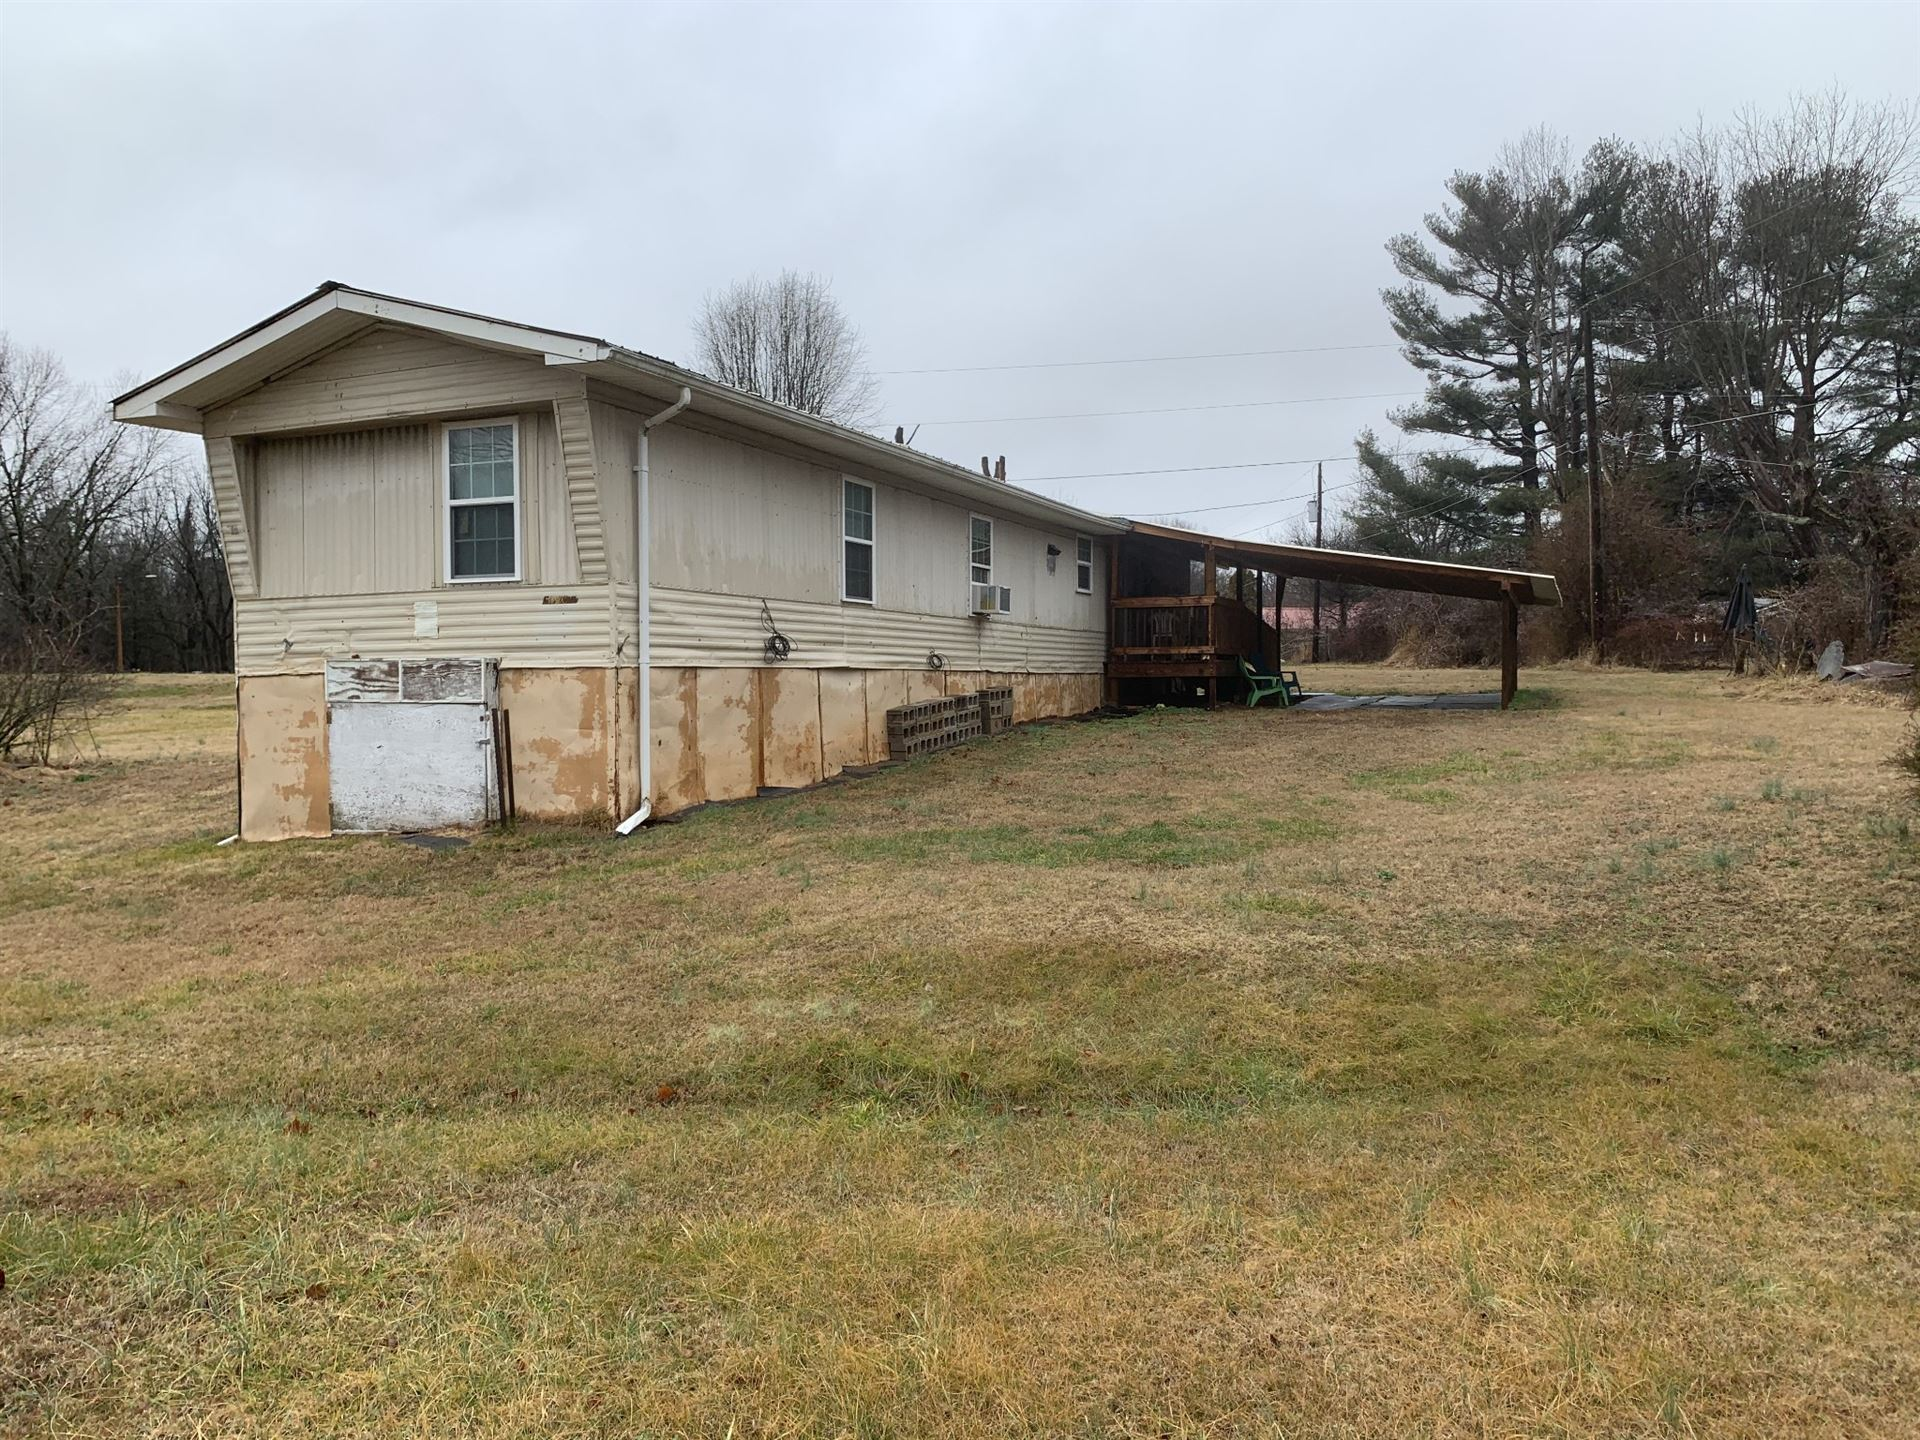 101 Berne Cir, Oak Grove, KY 42262 - MLS#: 2225576